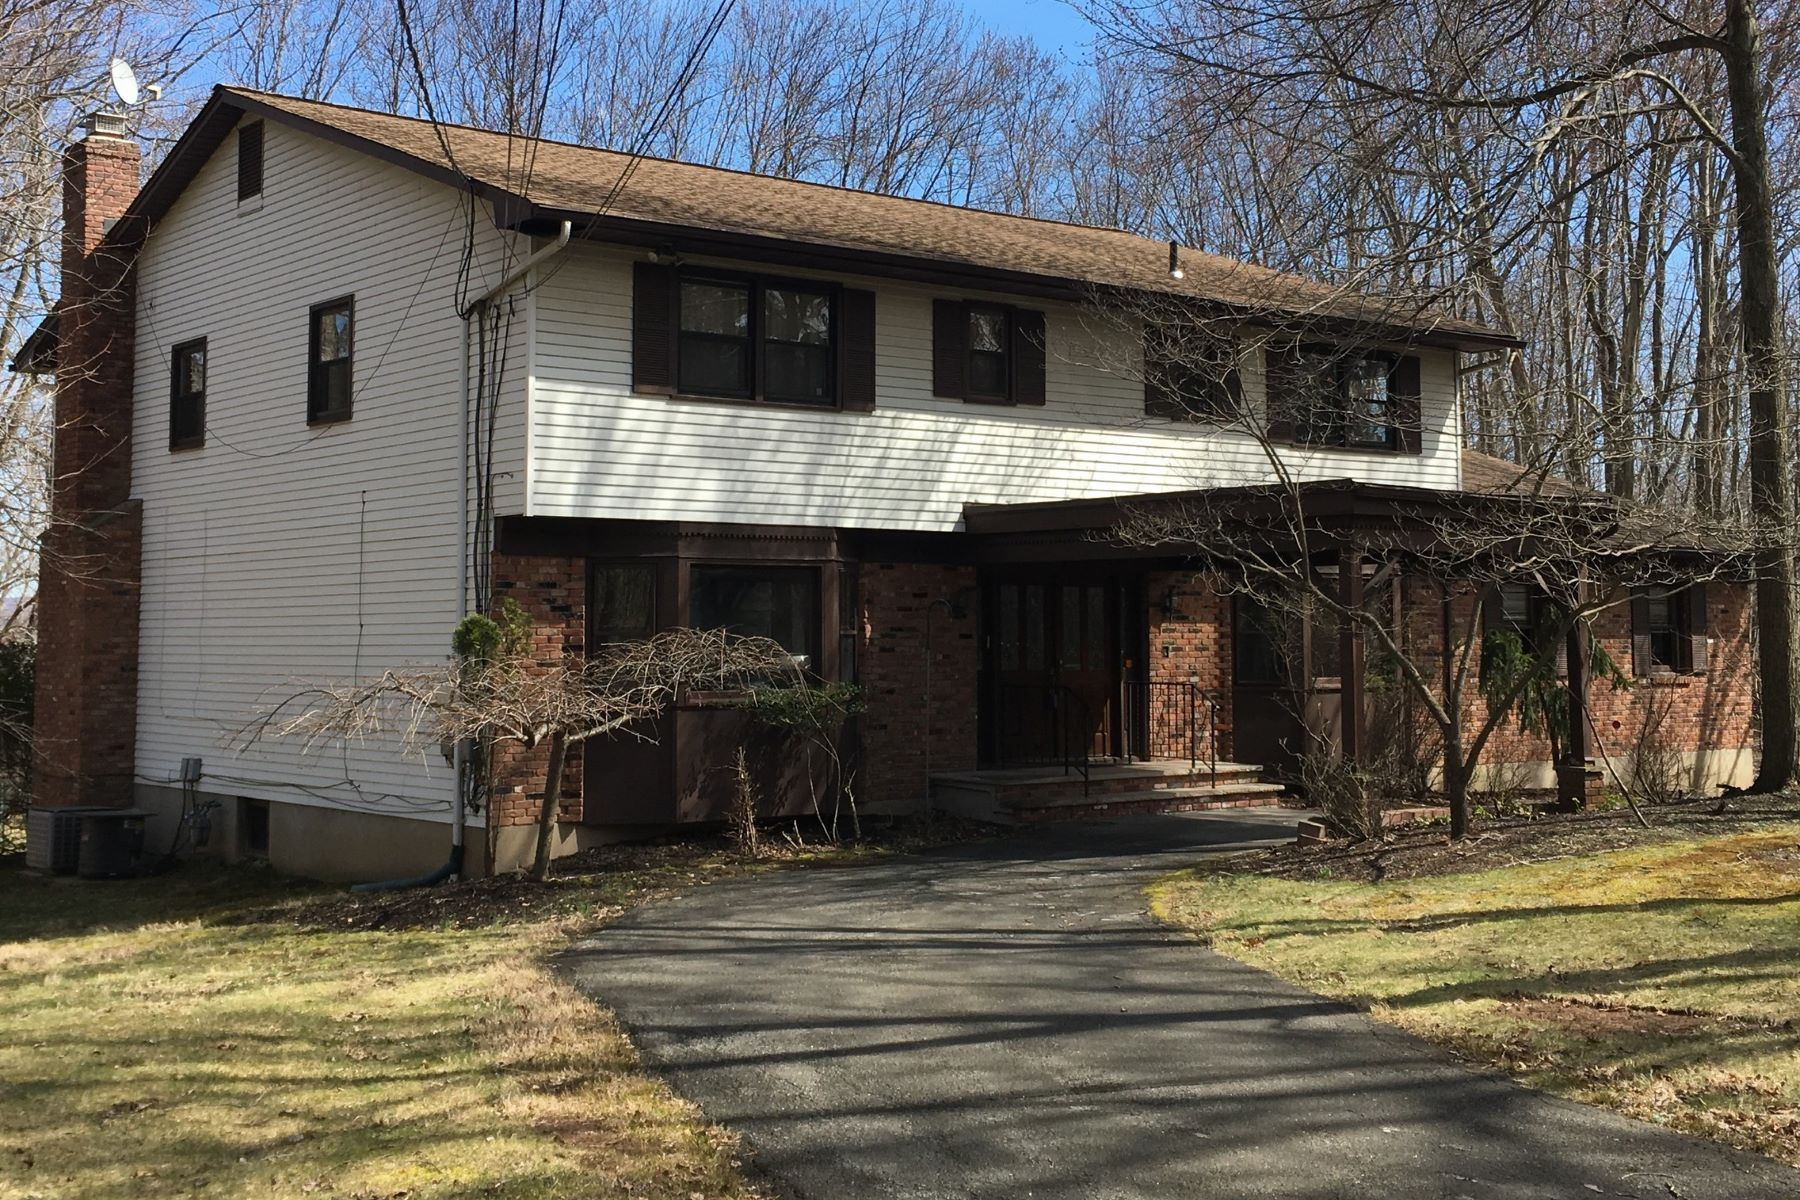 Single Family Home for Sale at Serene Setting 629 North Midland Ave. Upper Nyack, New York, 10960 United States